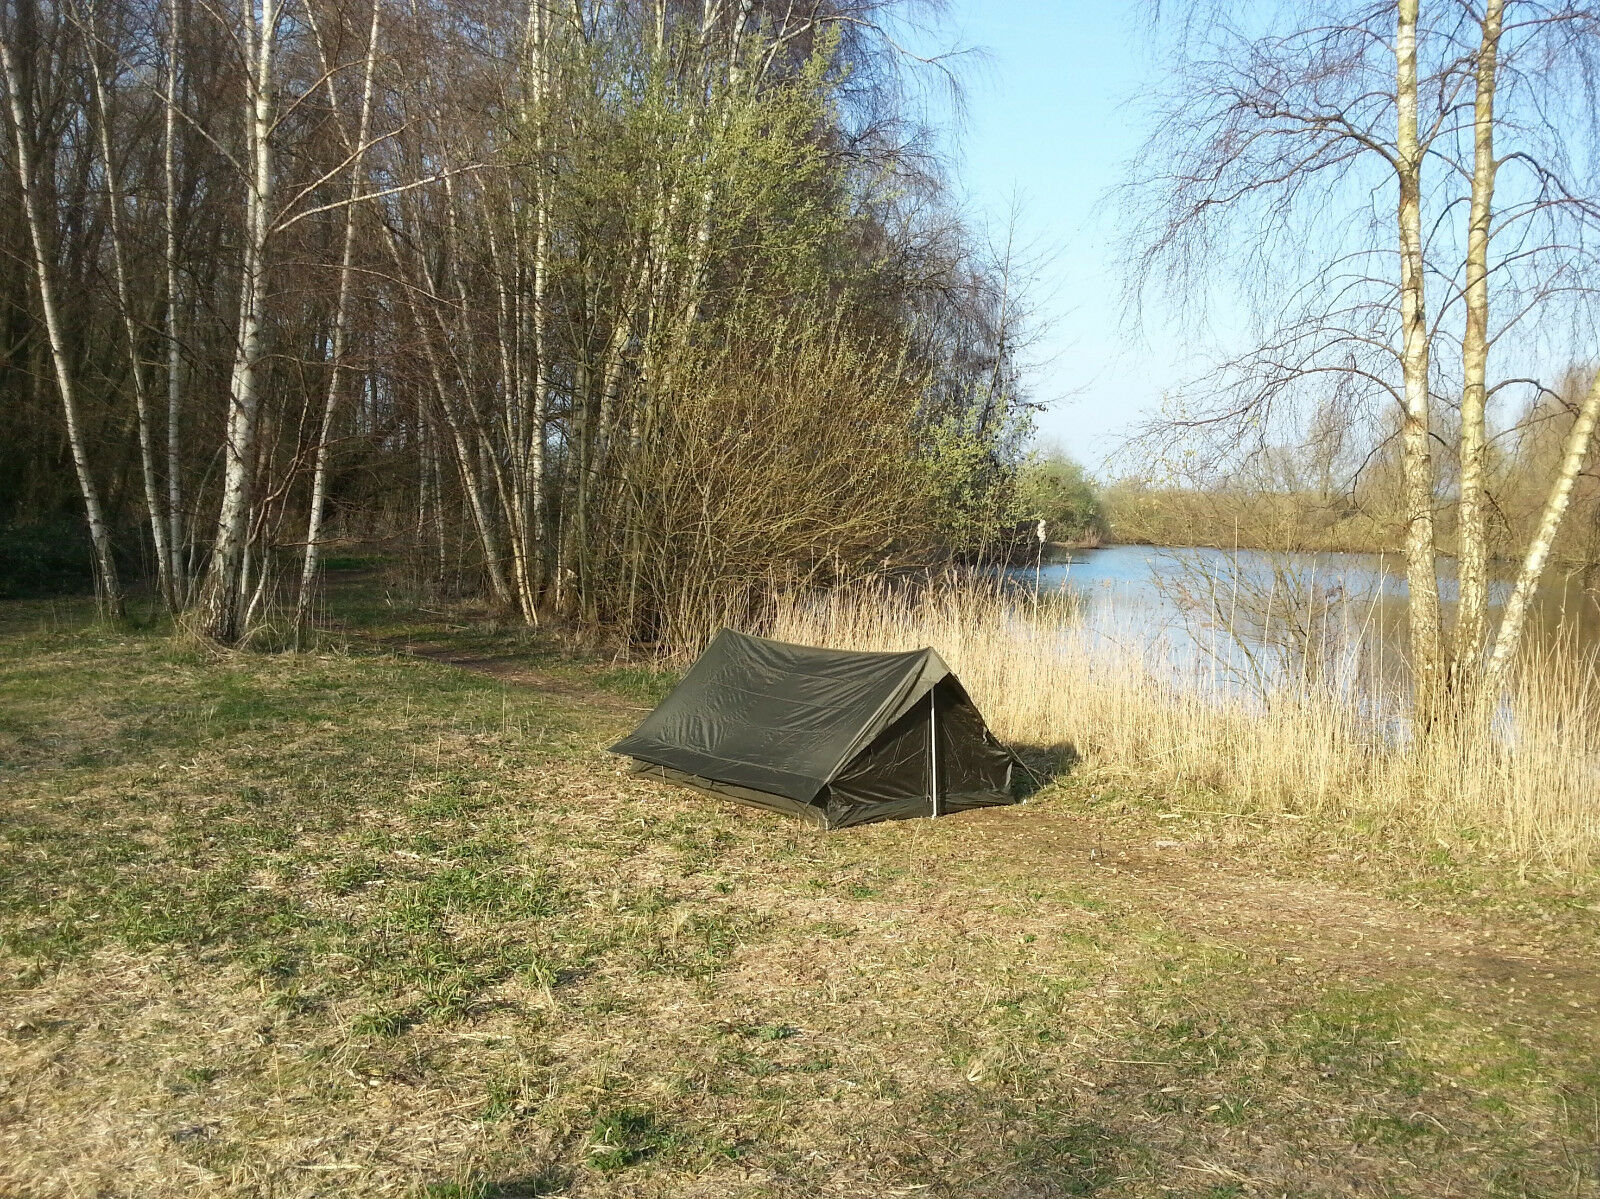 French Army F1  lightweight nylon commando tent in olive drab. NEW  honest service